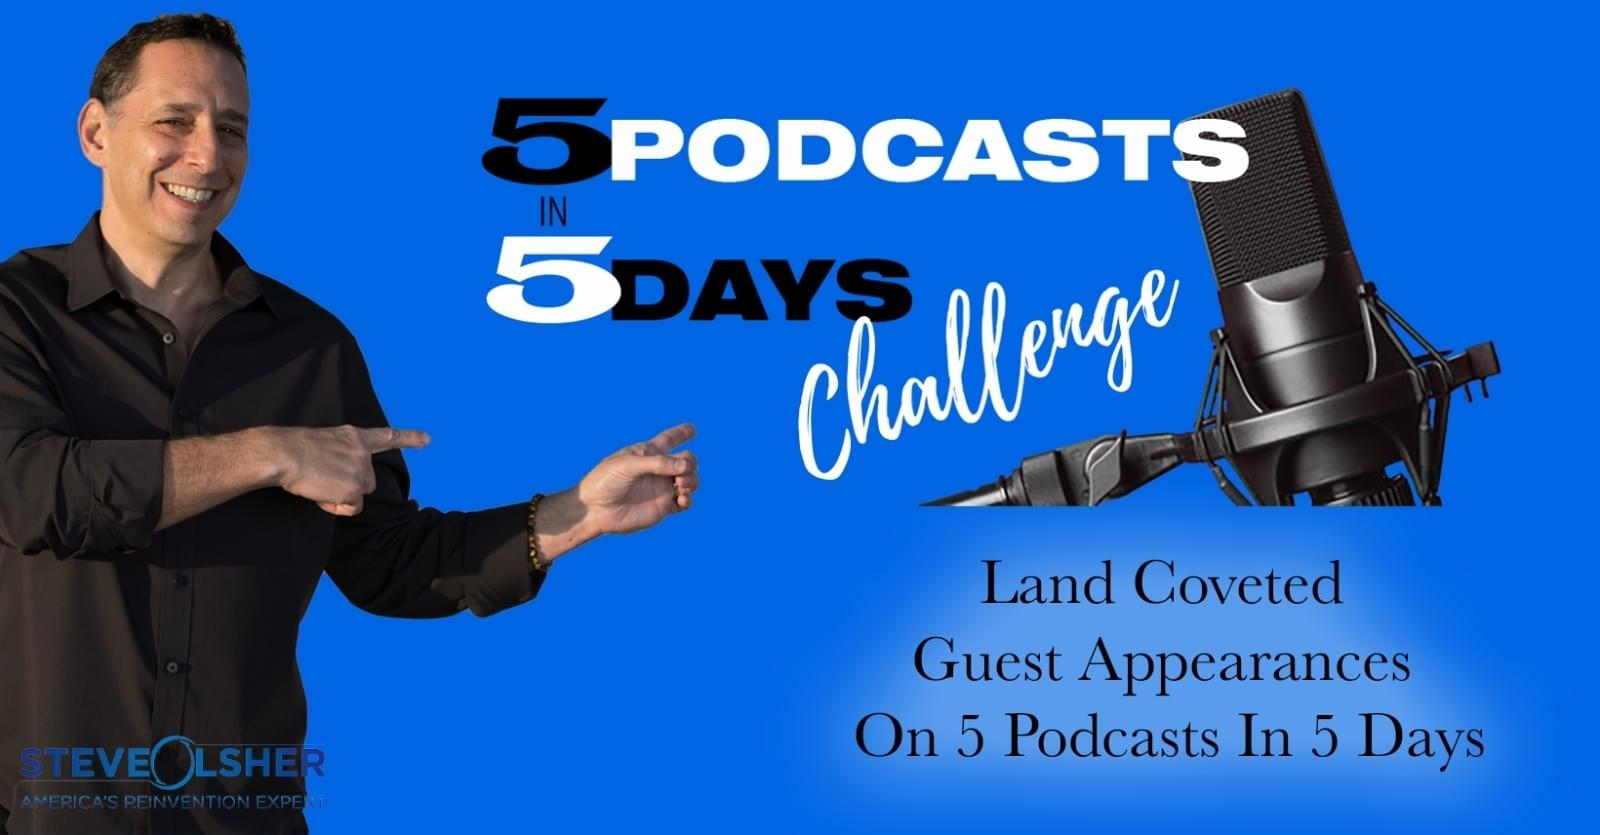 5 Podcasts In 5 Days Challenge